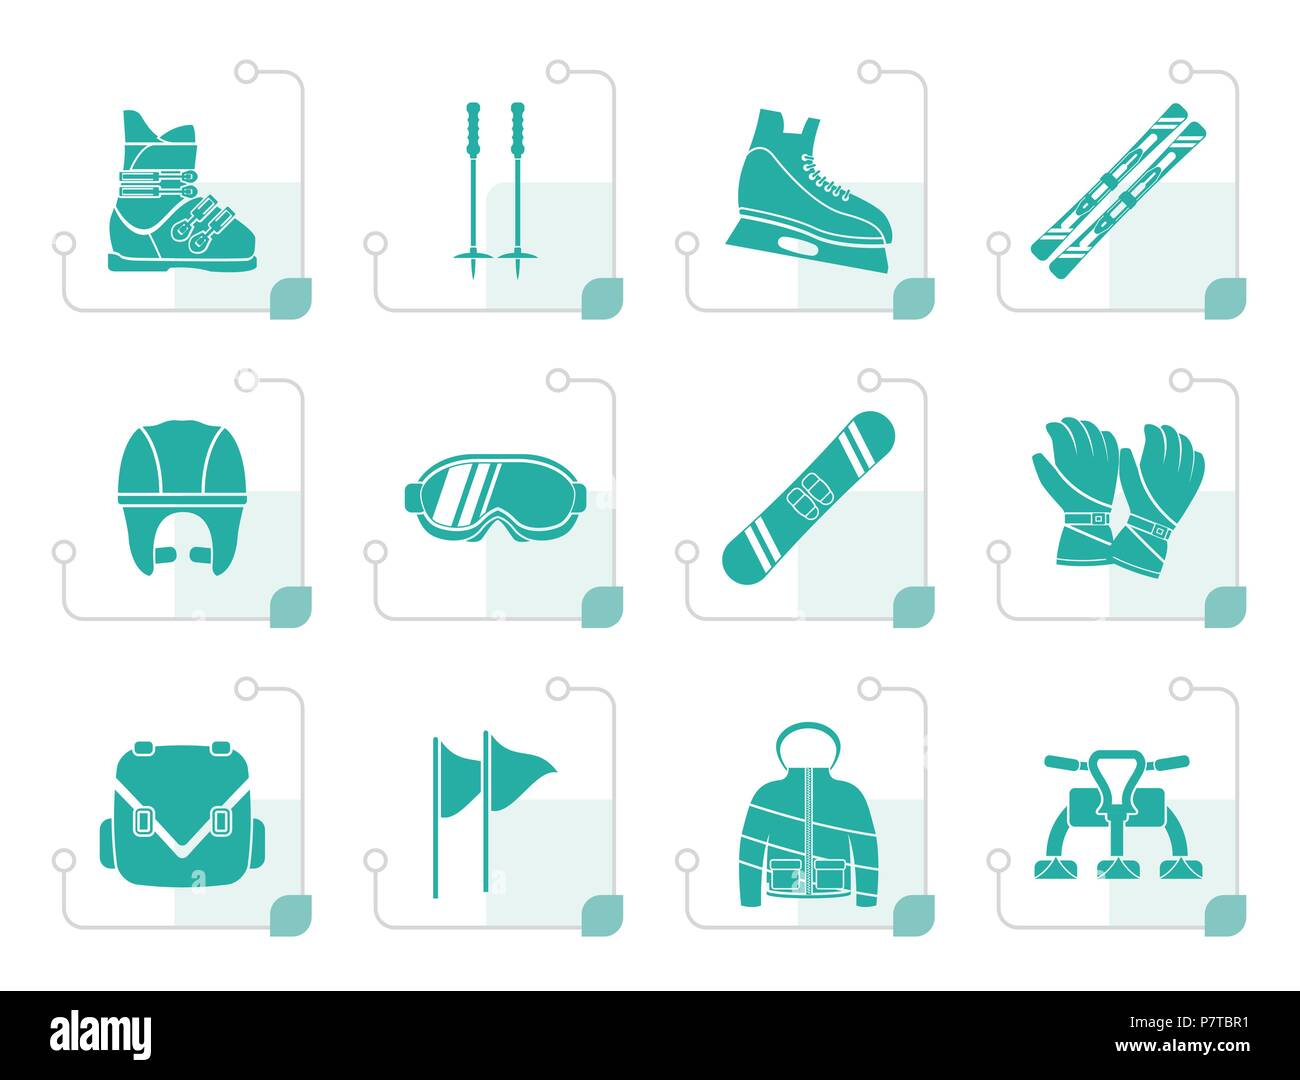 Stylized ski and snowboard equipment icons - vector icon set - Stock Image